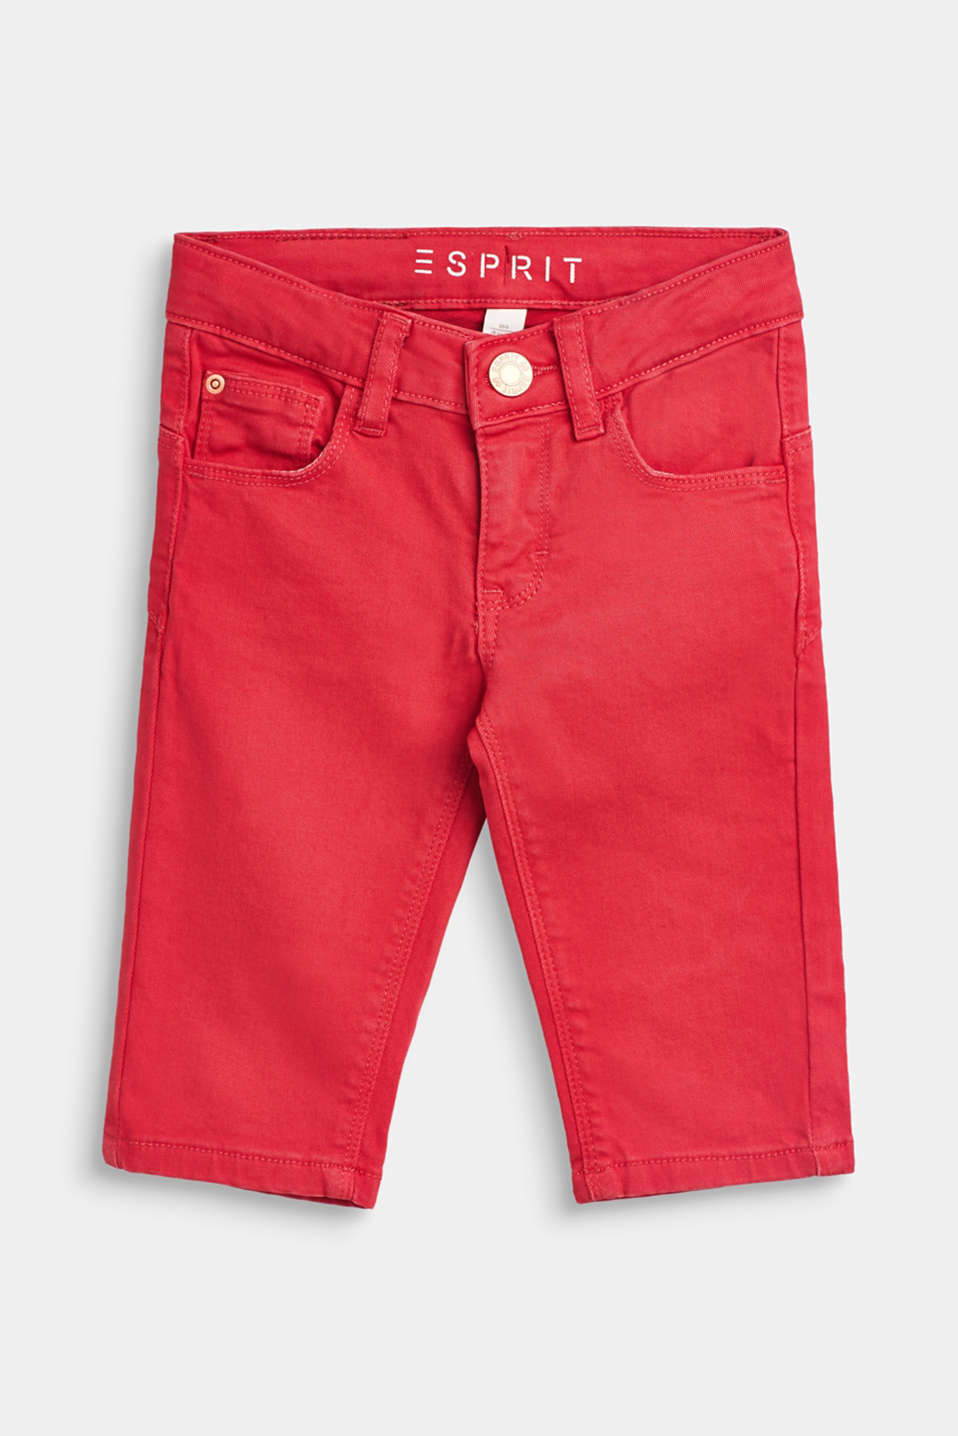 Esprit - Stretch-Jeans in Trendfarben